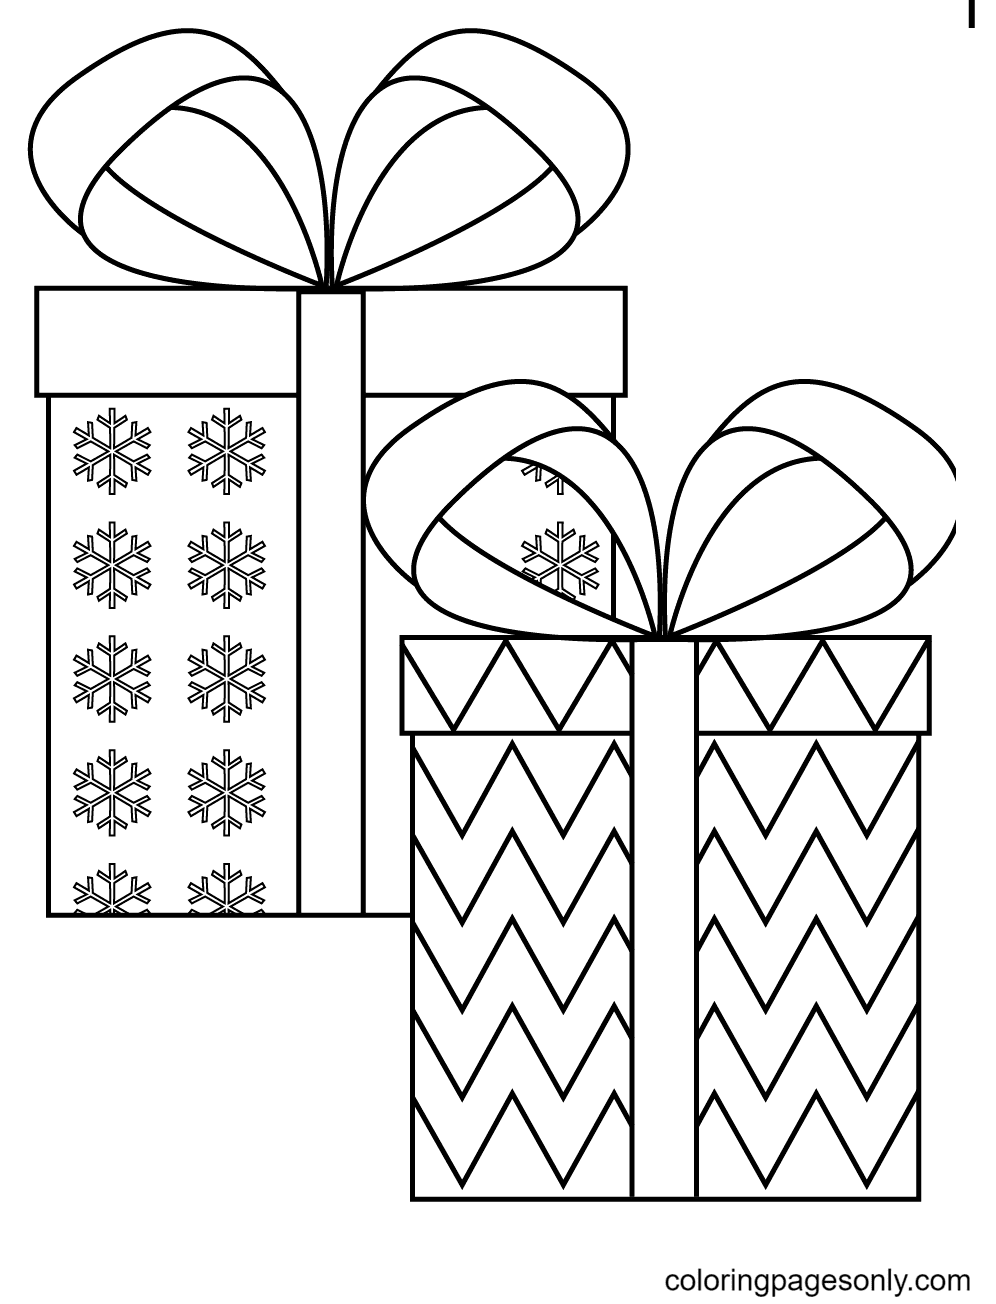 Lovely Gift Pair for Christmas Coloring Page